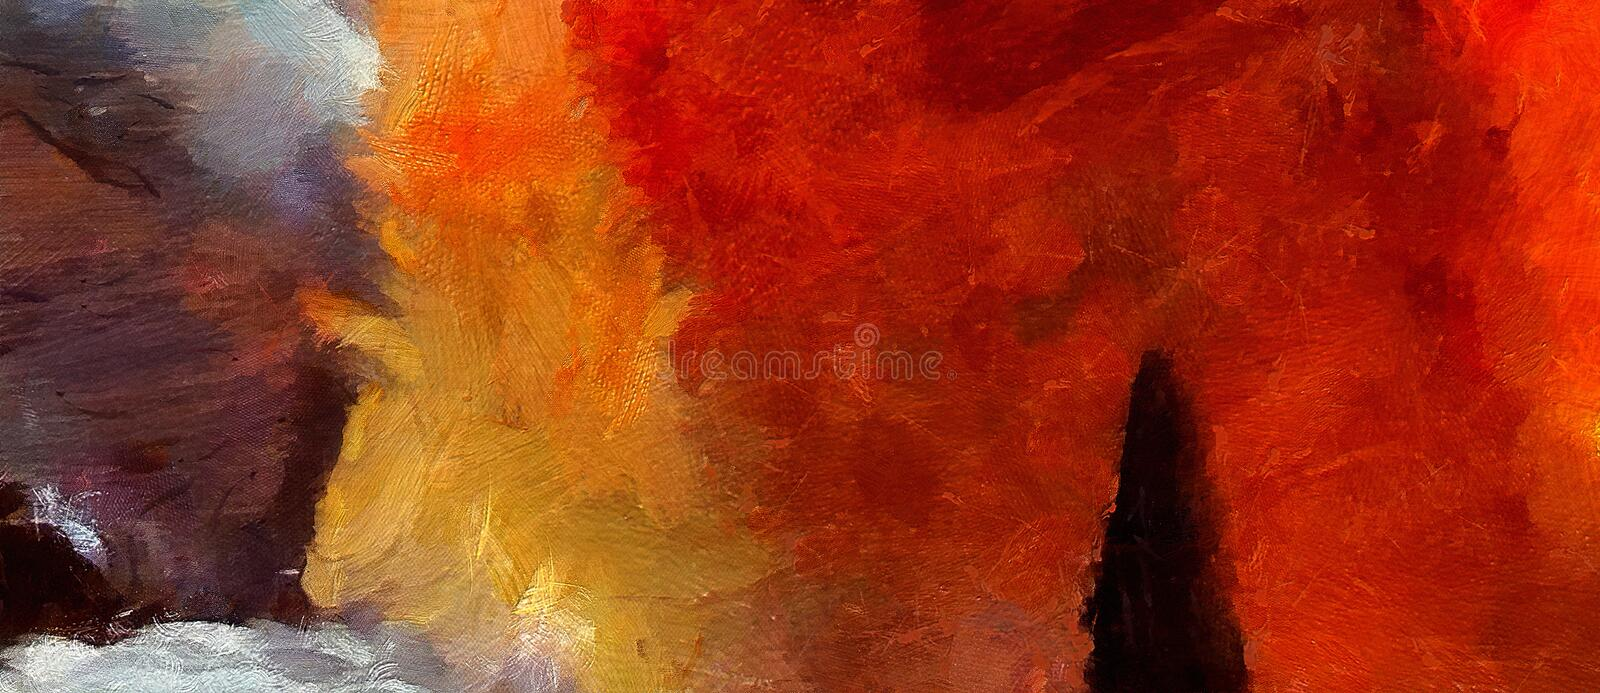 Impression abstract texture art. Artistic bright bacground. Stock. Oil painting artwork. Modern style graphic wallpaper. Impression color mix abstract texture royalty free illustration